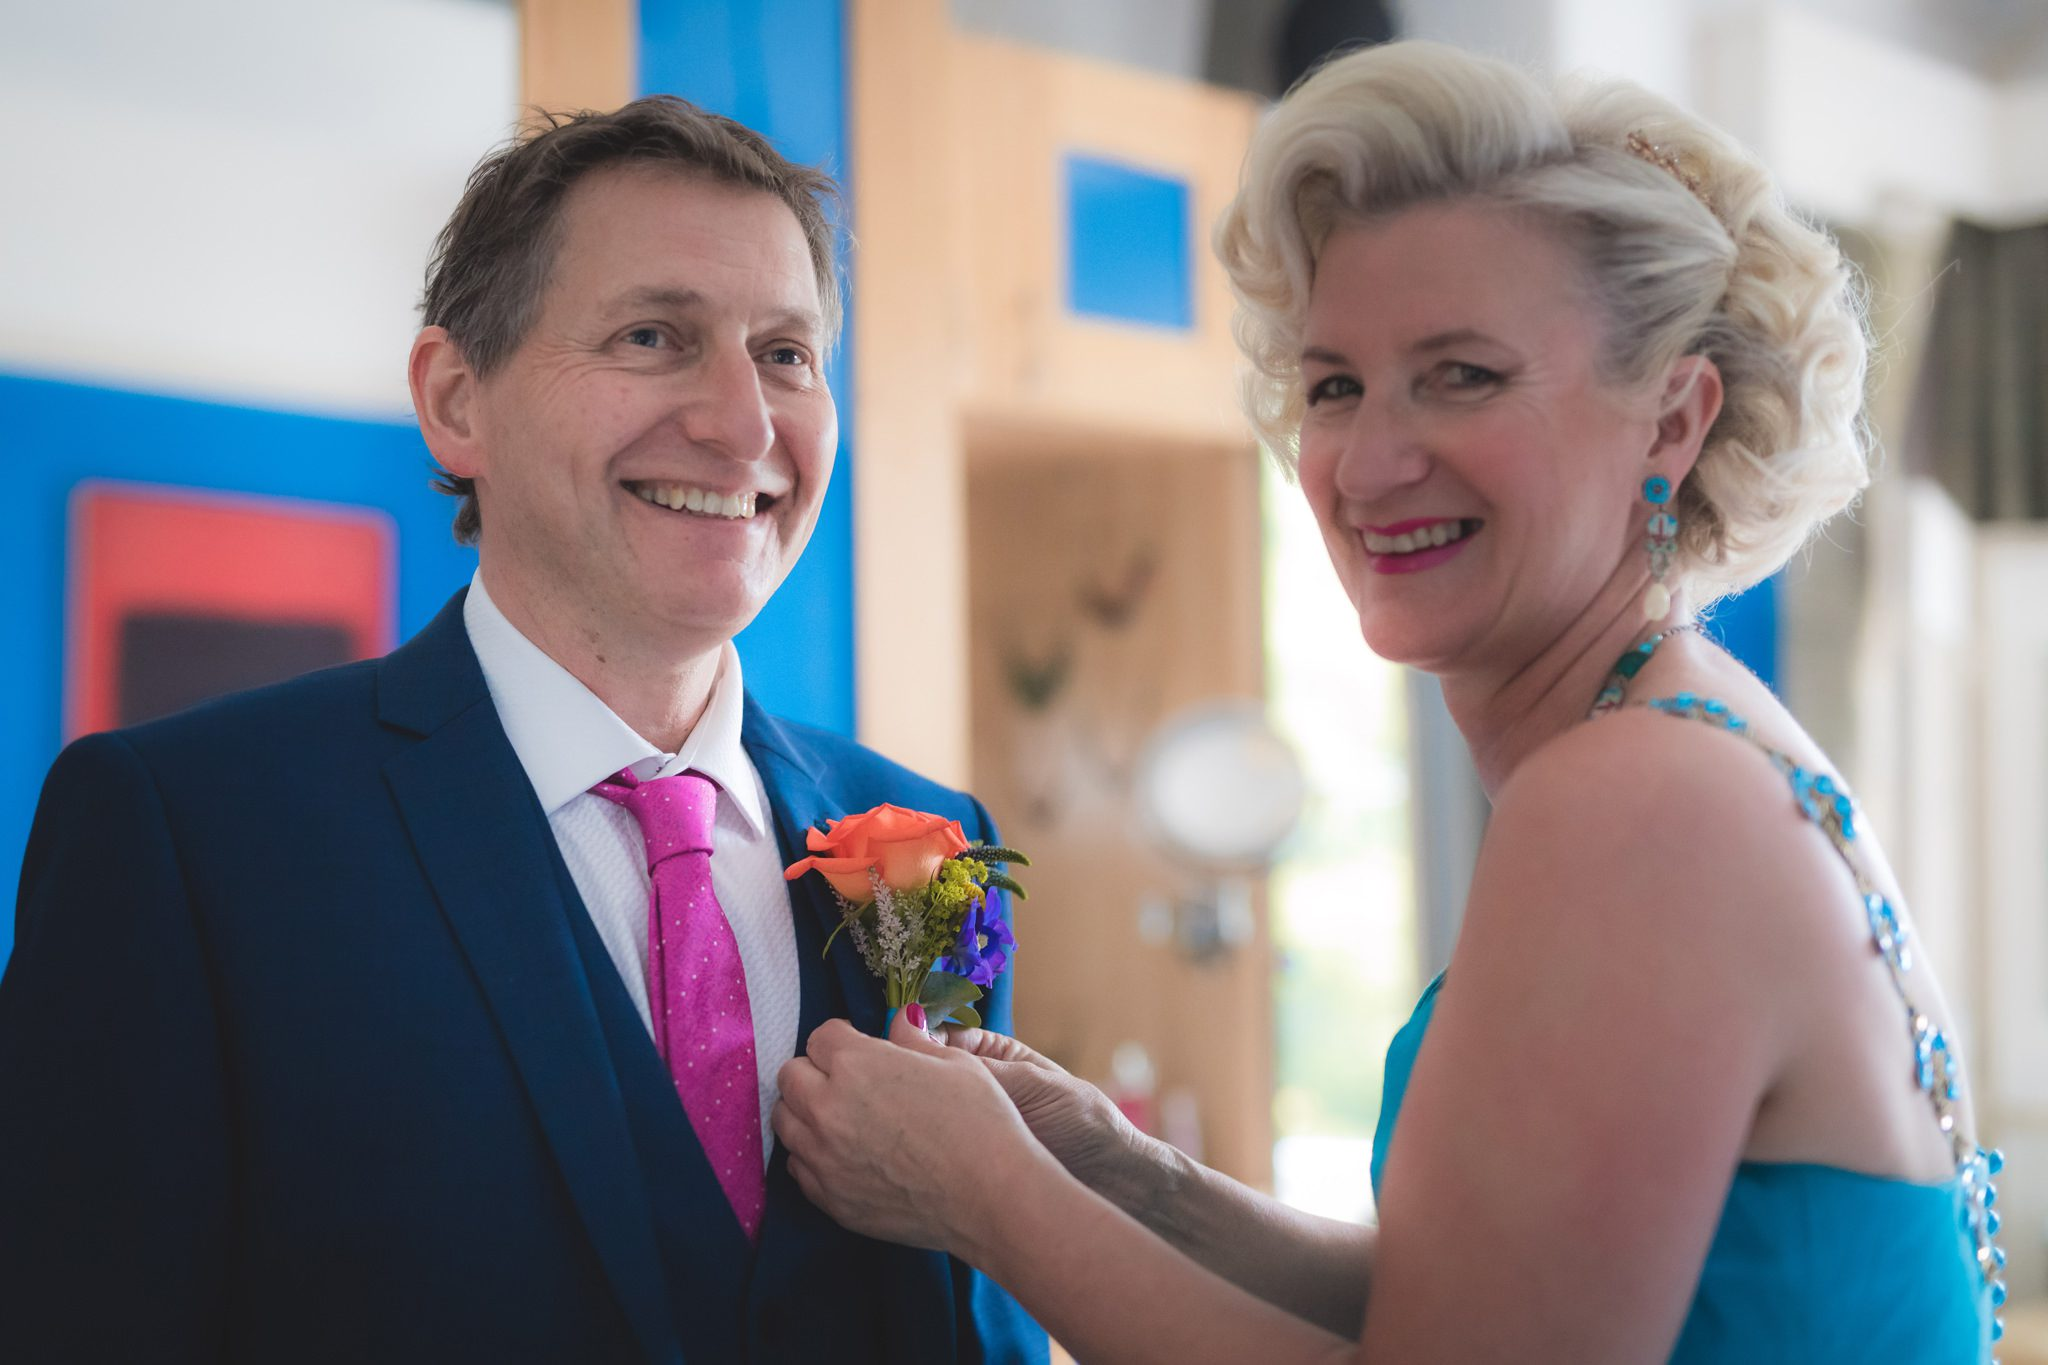 Derbyshire Wedding Photographer - Debbie and J Buttonhole